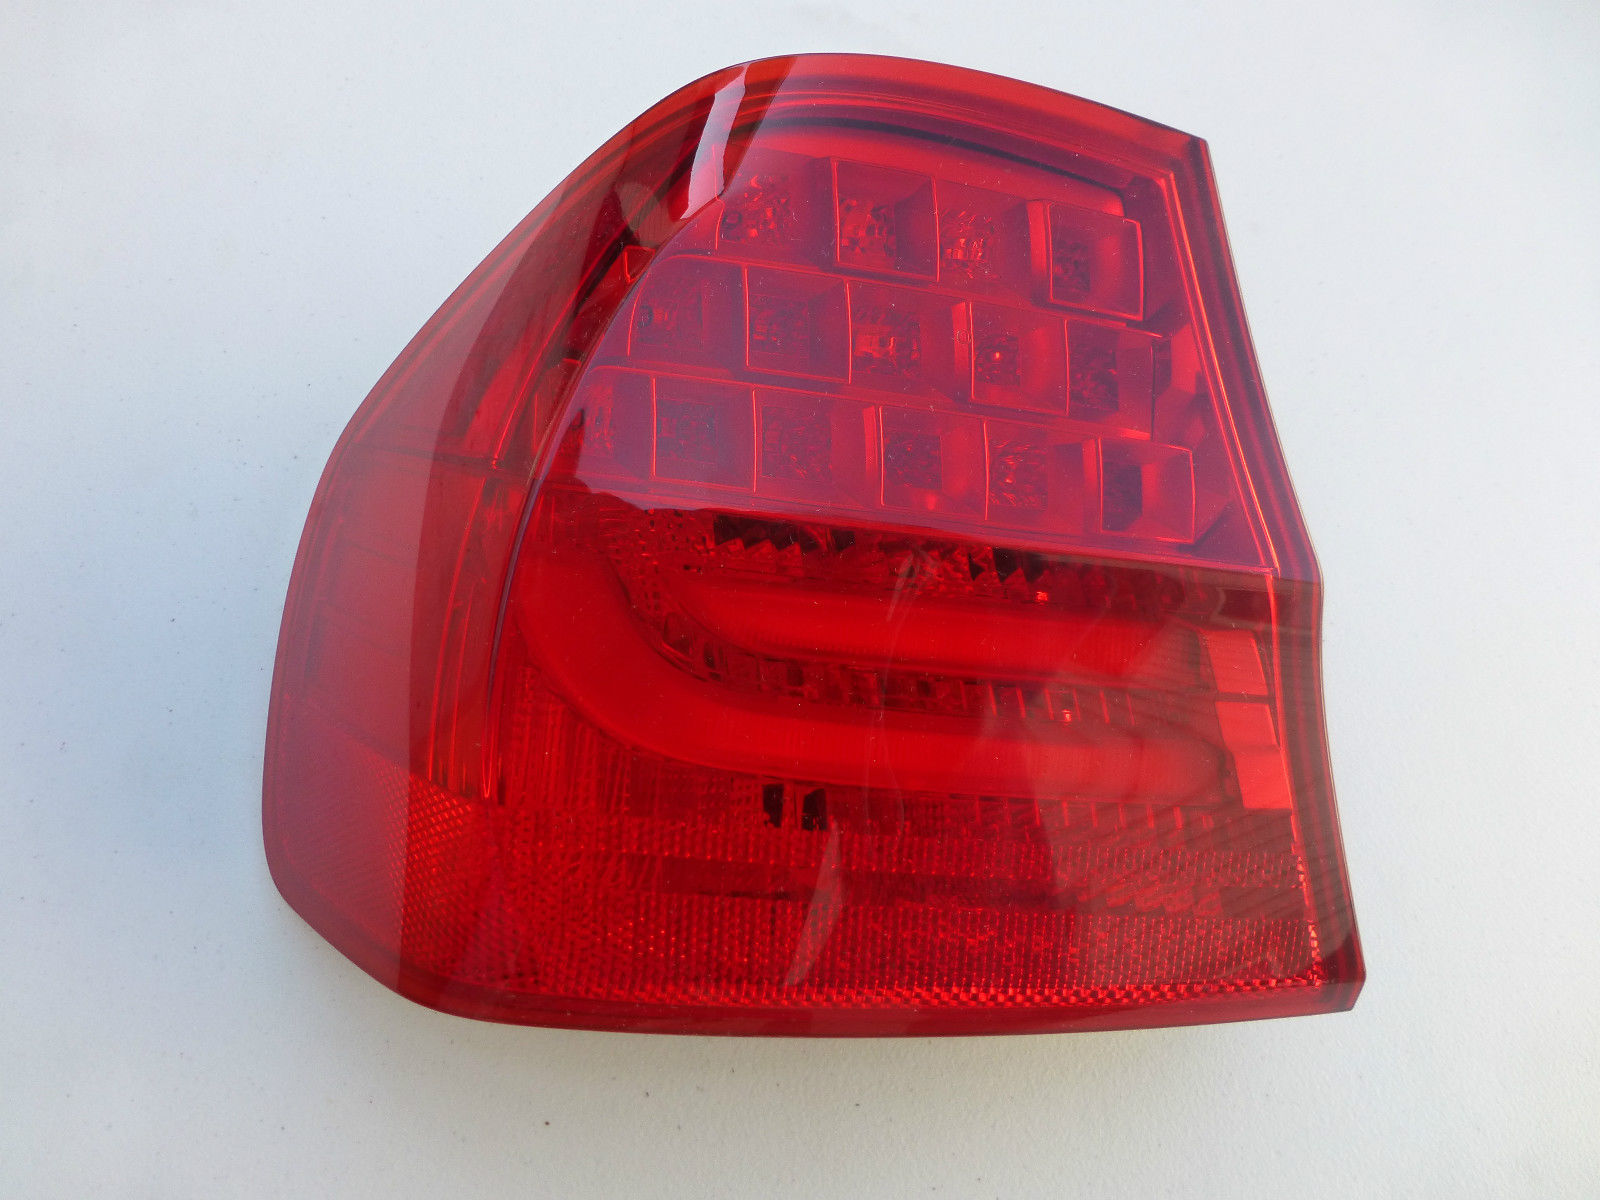 2009 2010 2011 BMW 328i 335d 335i E90 M3 (All Sedan) Rear Left Taillight Lamp inside Panel 63214871735 OEM